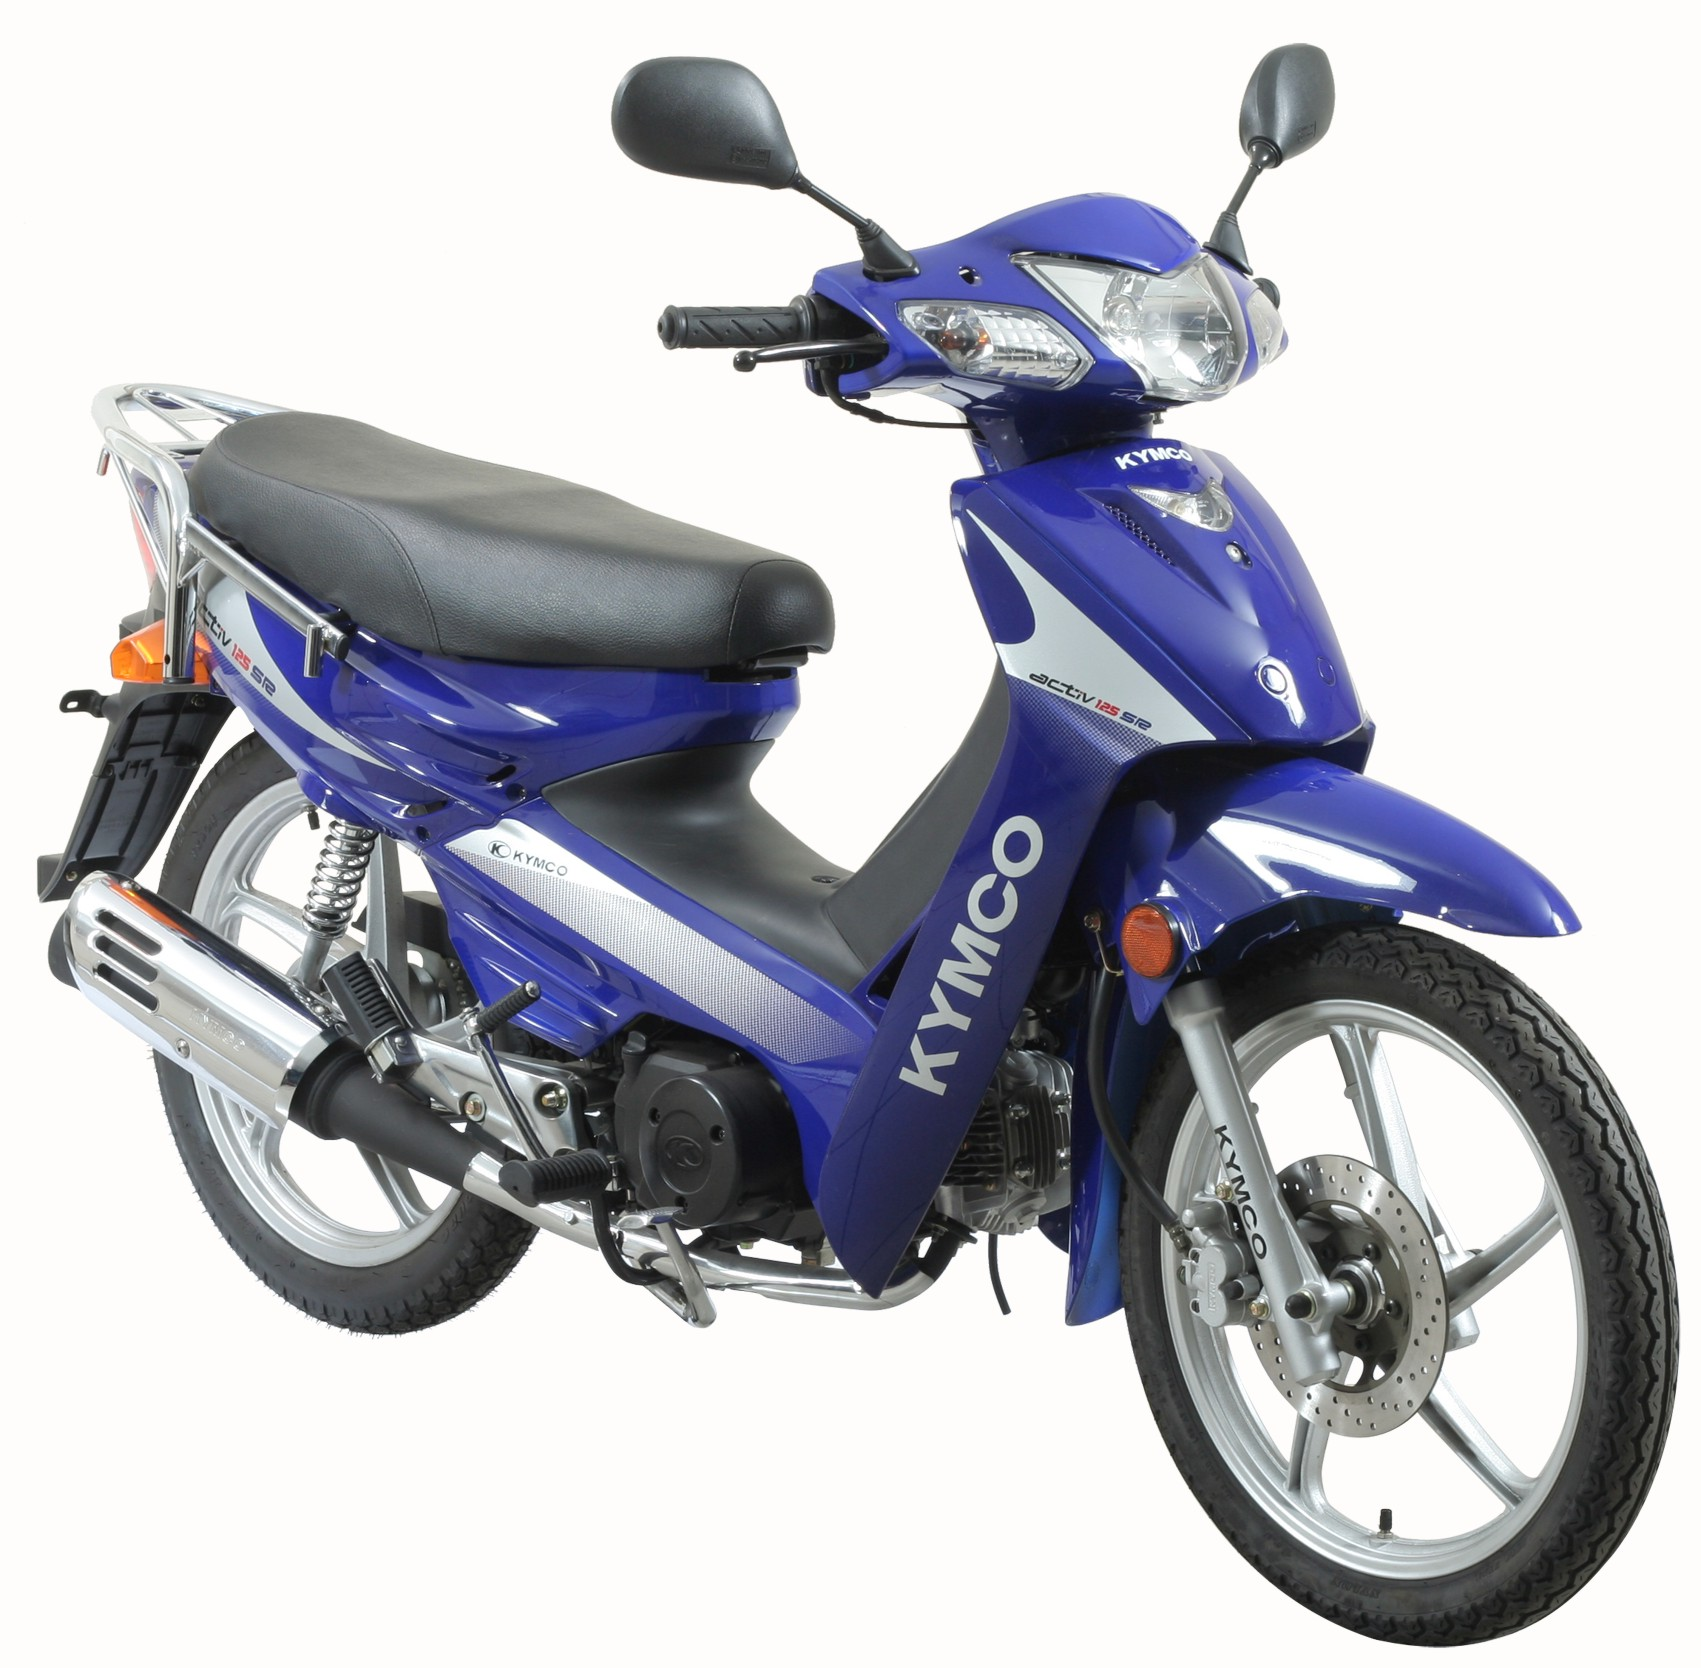 kymco activ 125-pic. 1